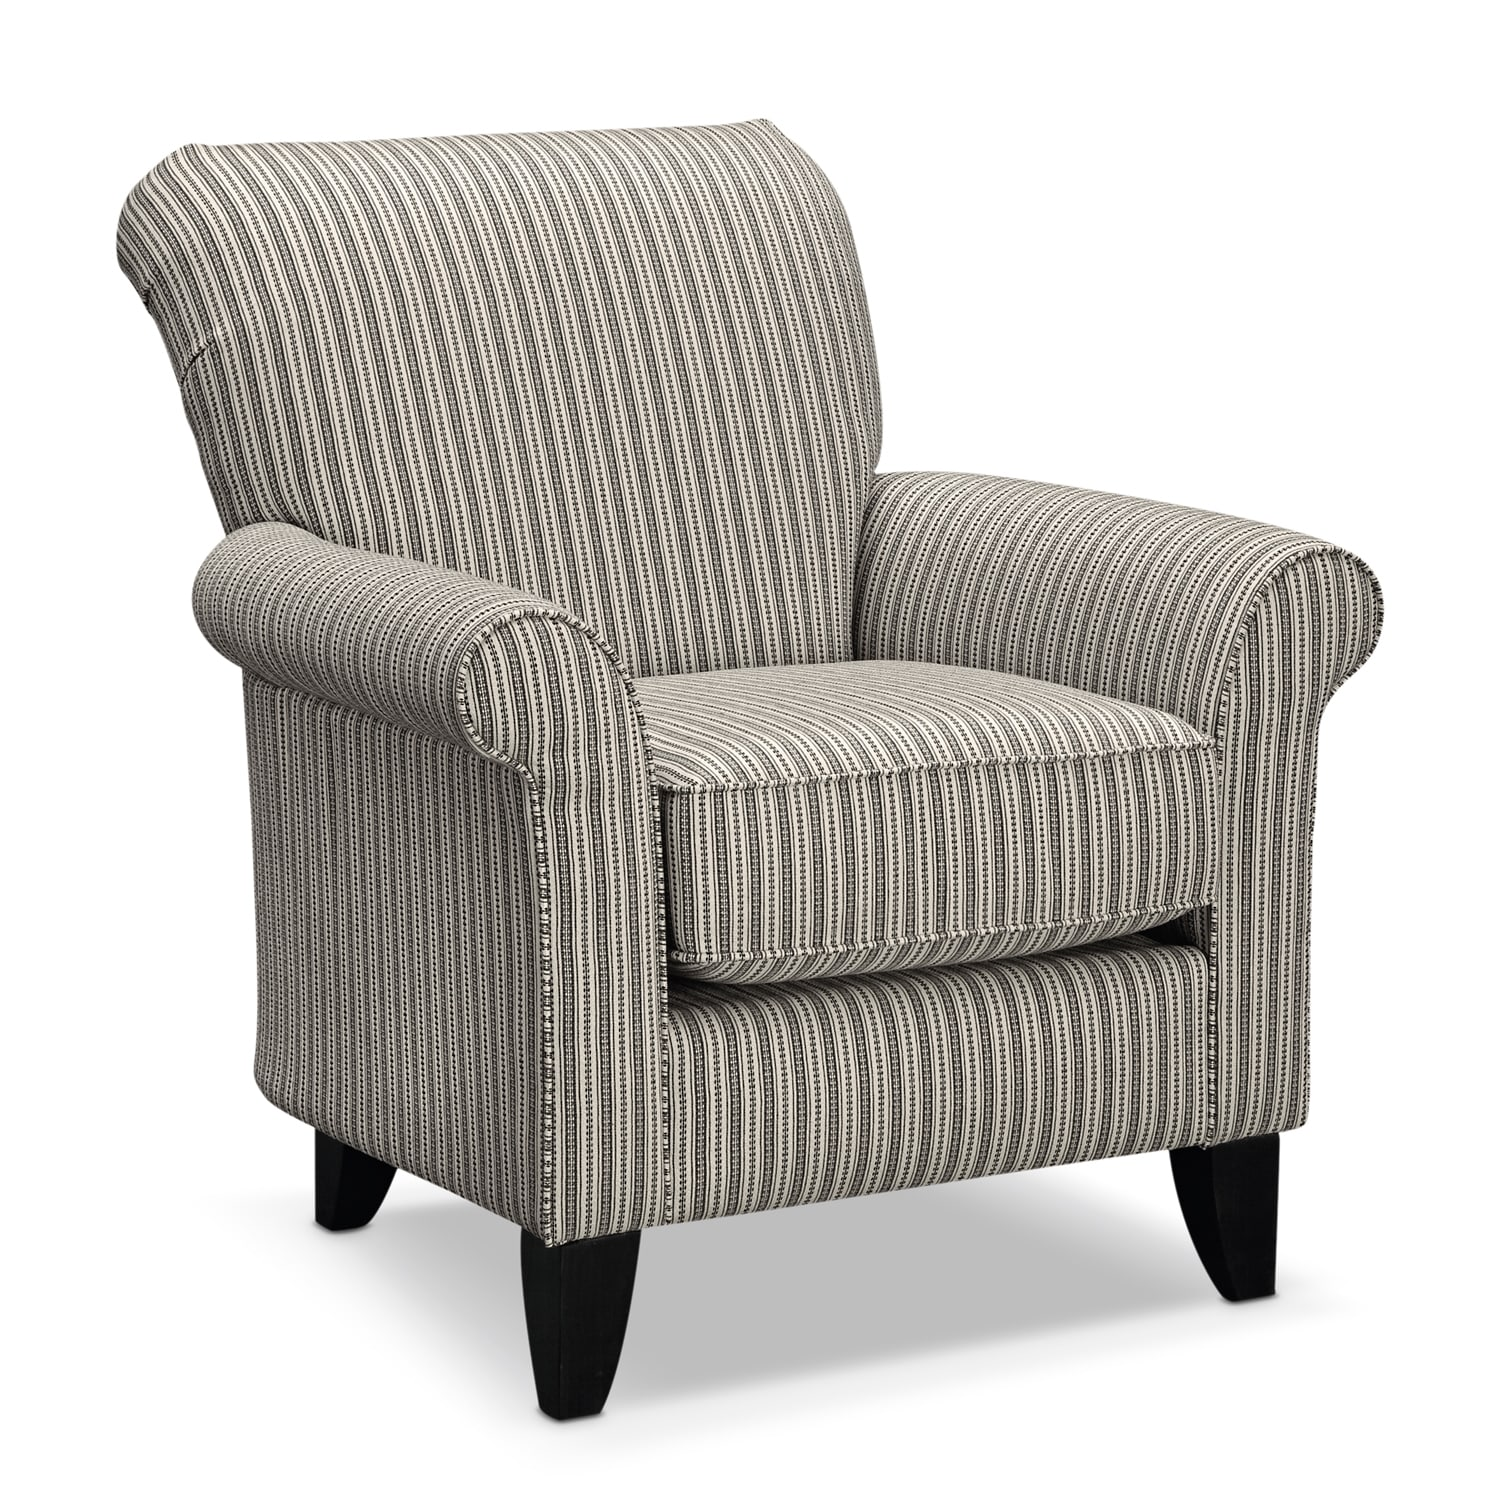 Colette accent chair gray stripe value city furniture for White living room chairs